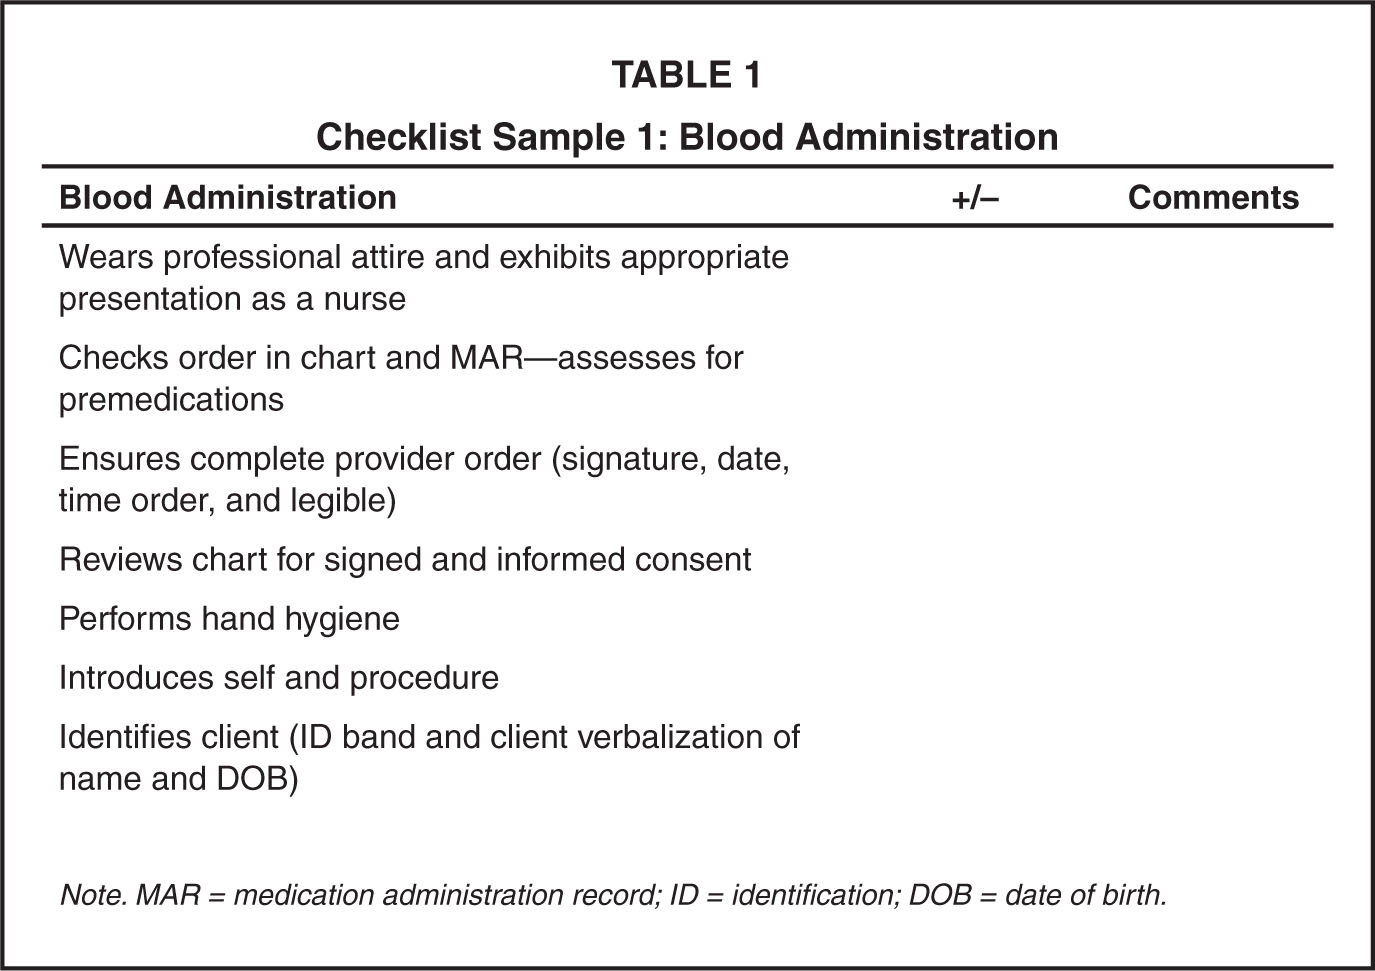 Checklist Sample 1: Blood Administration